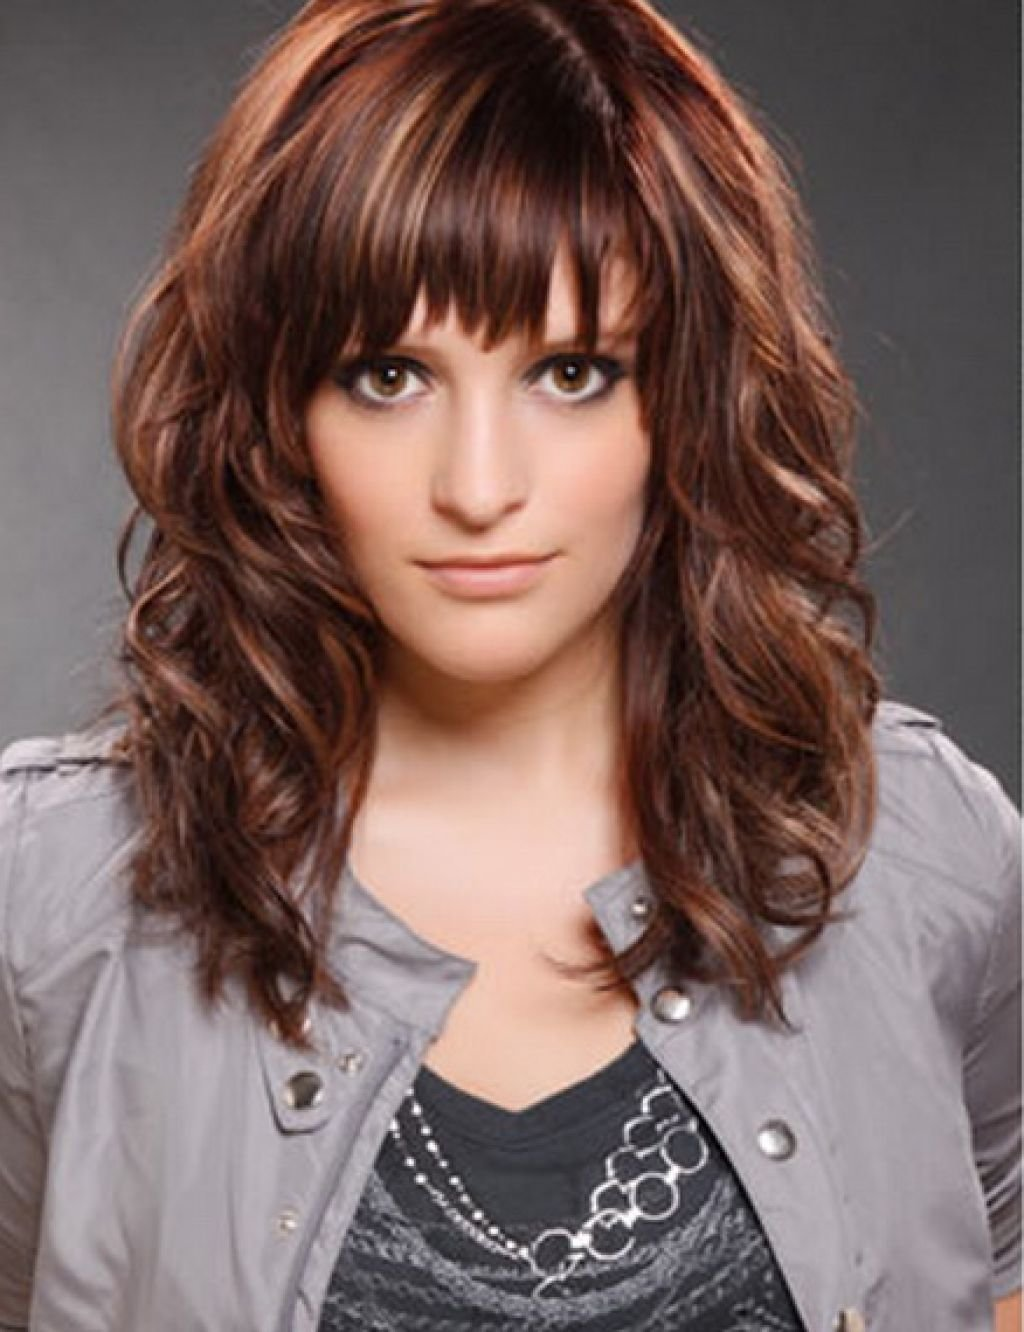 New Cute Hairstyles For Medium Curly Hair With Side Bangs Hairstyle For Women Man Ideas With Pictures